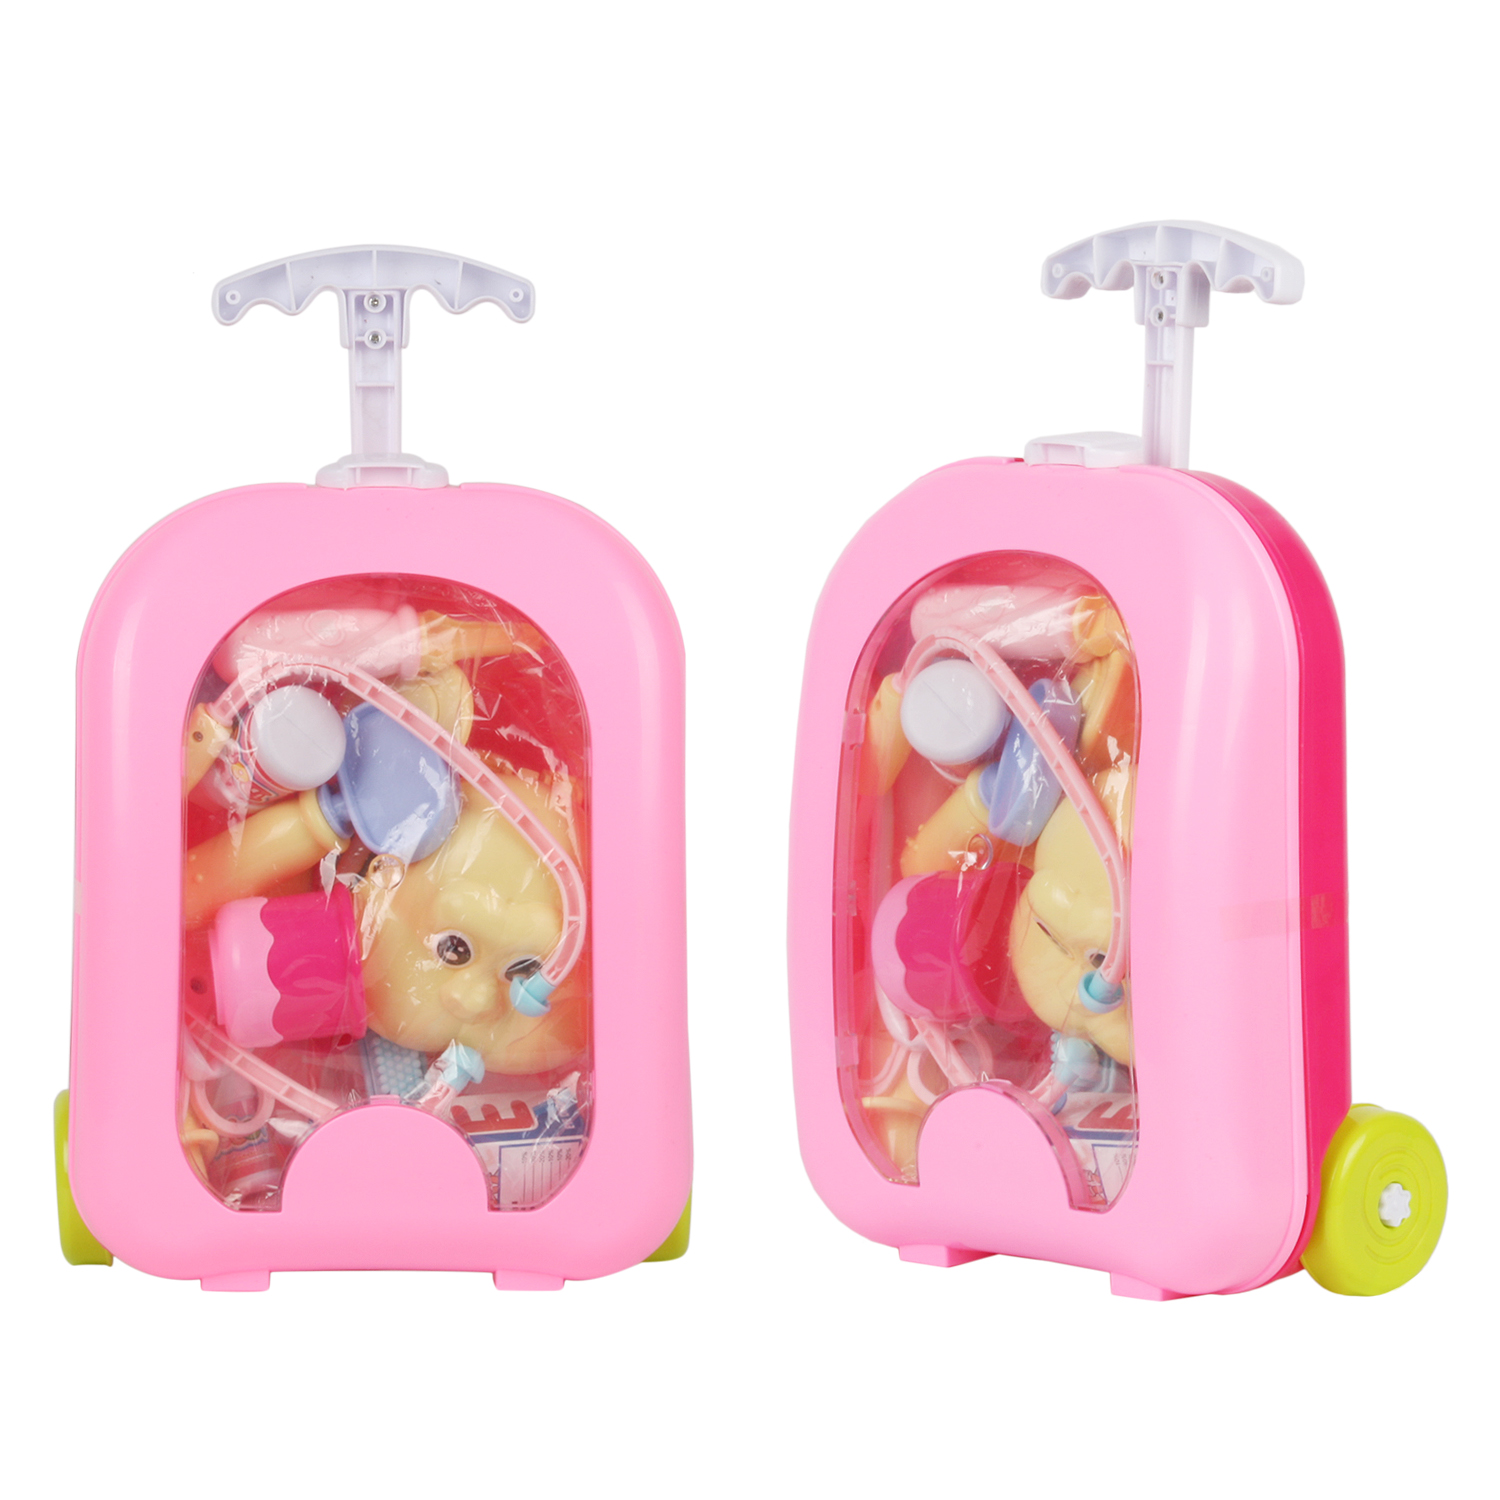 17pcs/set Children Pretend Play Doctor Nurse Toy Portable Suitcase Medical Suitcase Kit Kids Educational Role Play Classic Toys